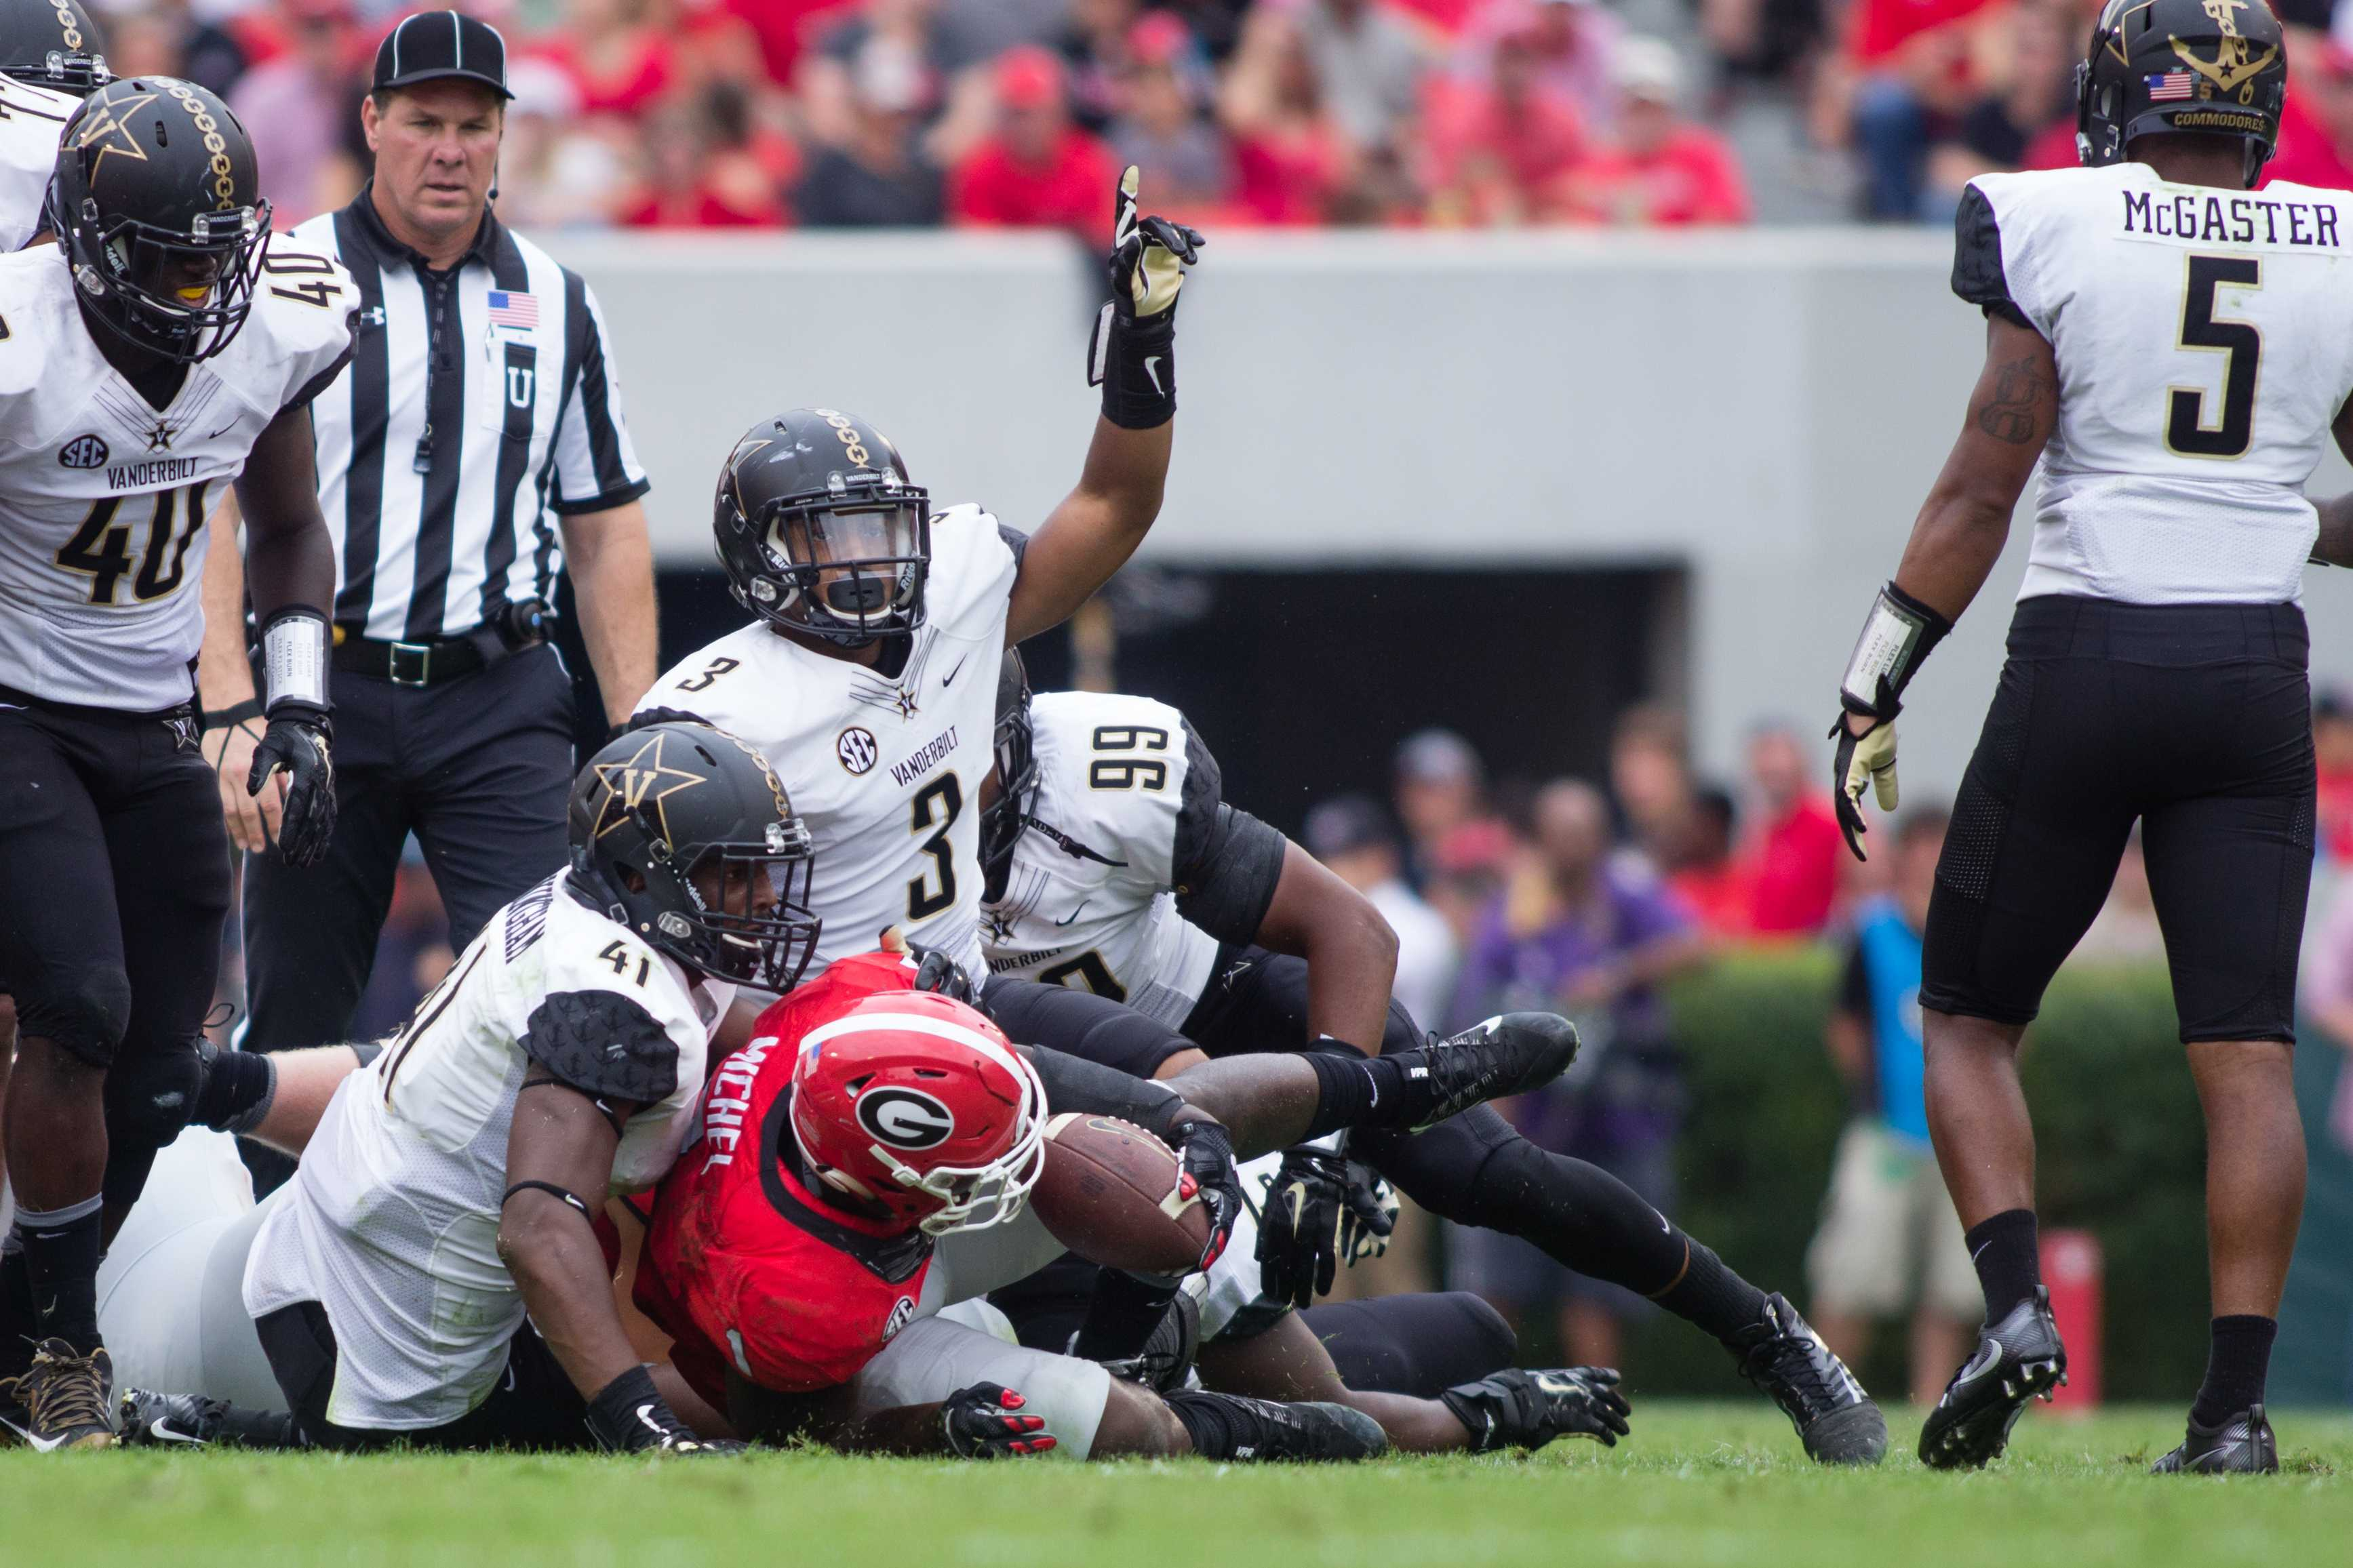 Three Matchups to Watch: Vanderbilt vs. Georgia